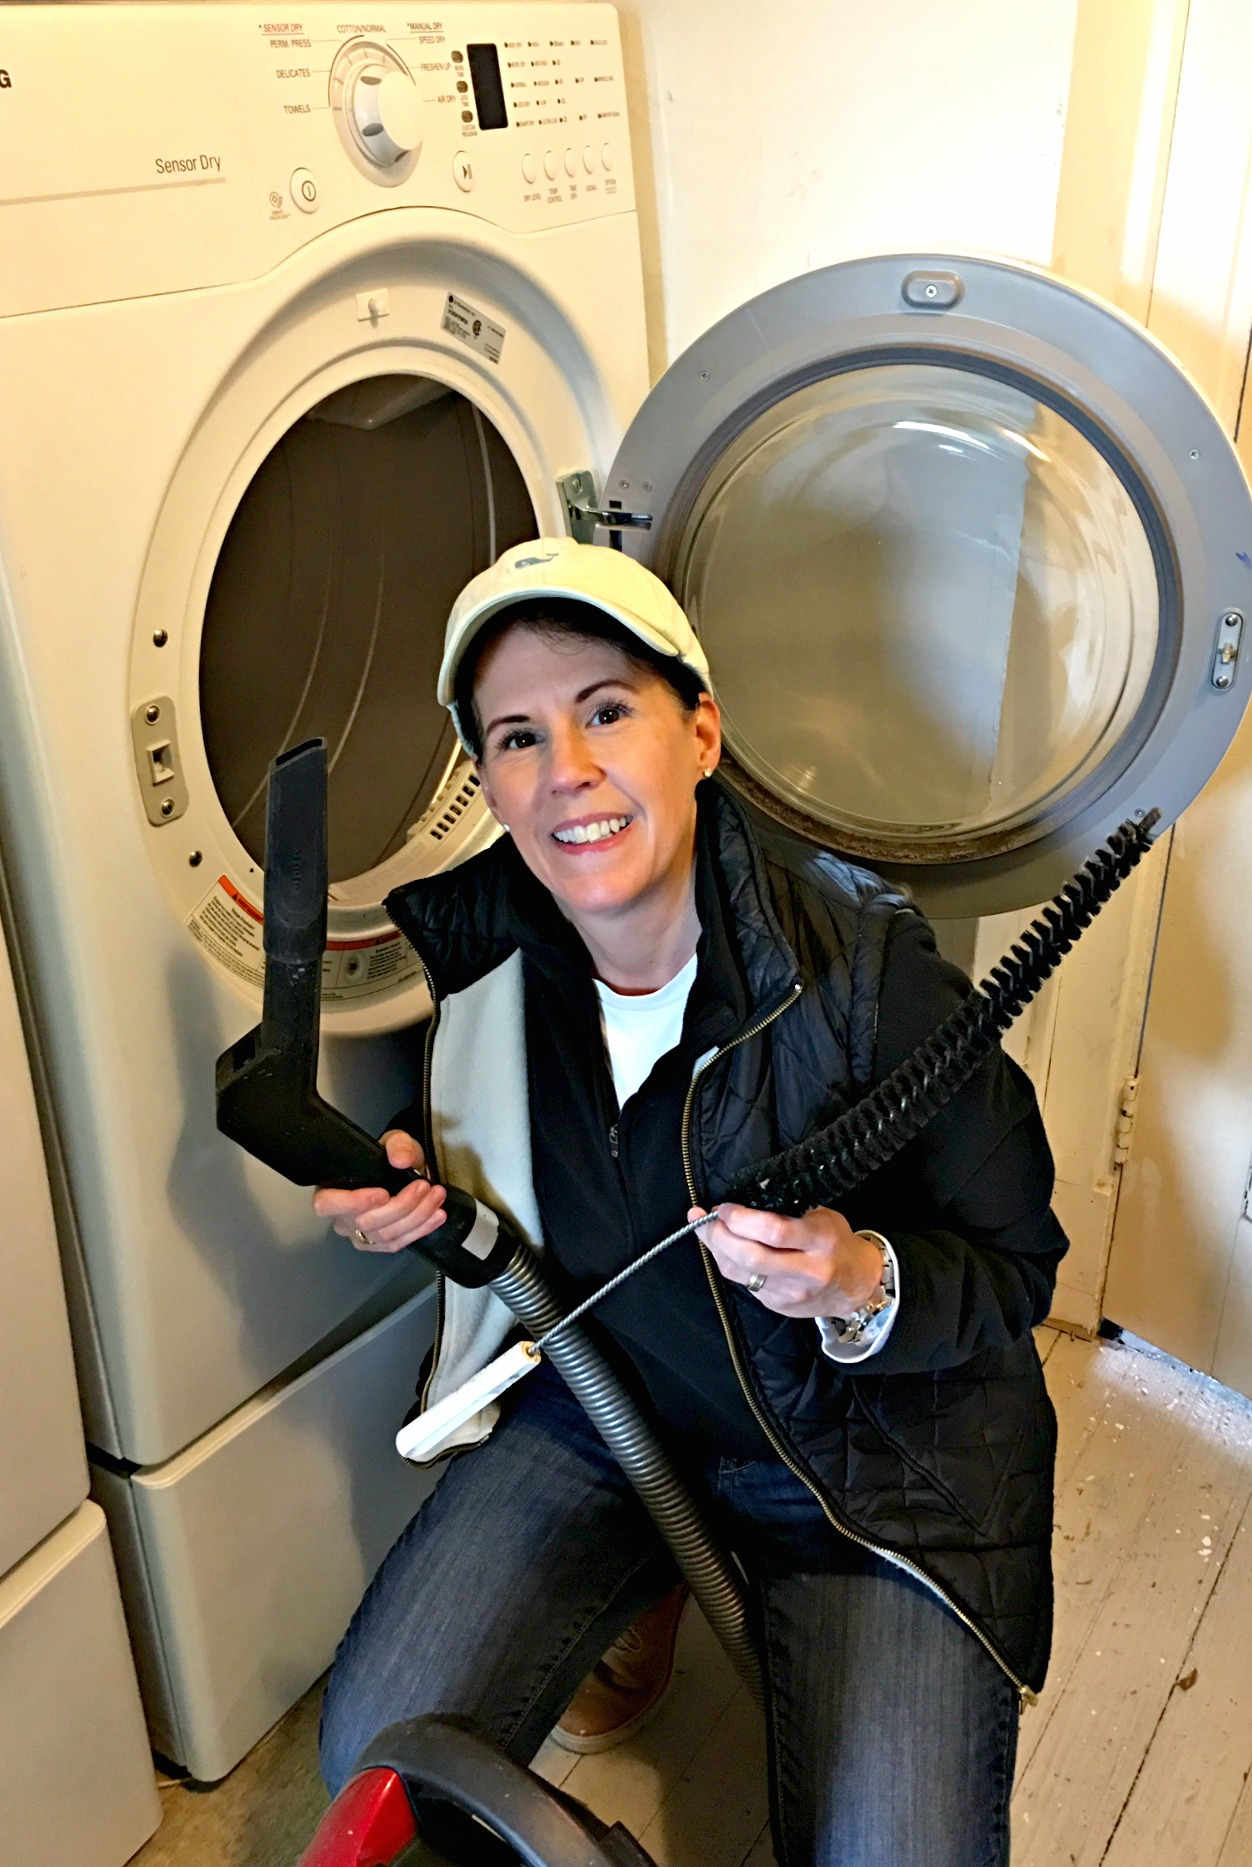 dryer safety tips - DIY Dutchess shares how to's